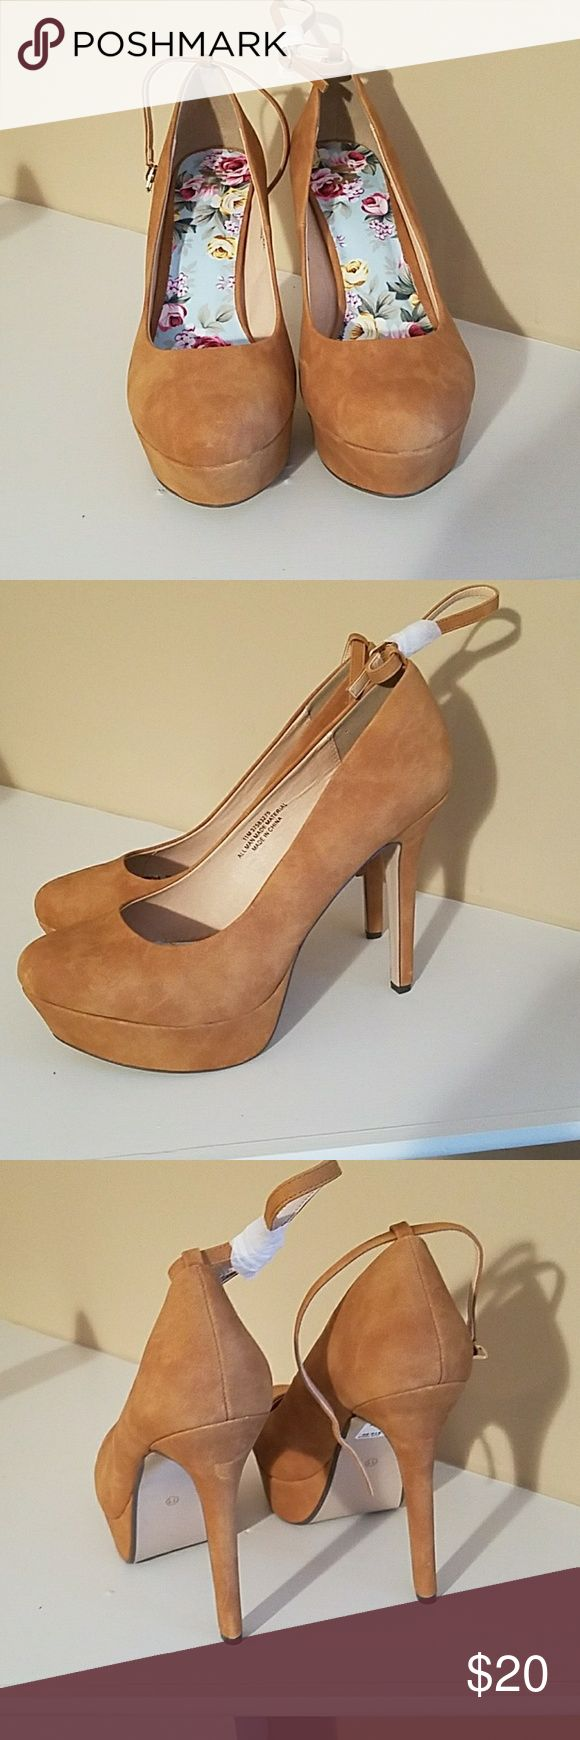 Women's High Heels Tan High Heels with ankle straps. Very Sexy Shoe!!! It's Fashion Metro Shoes Heels